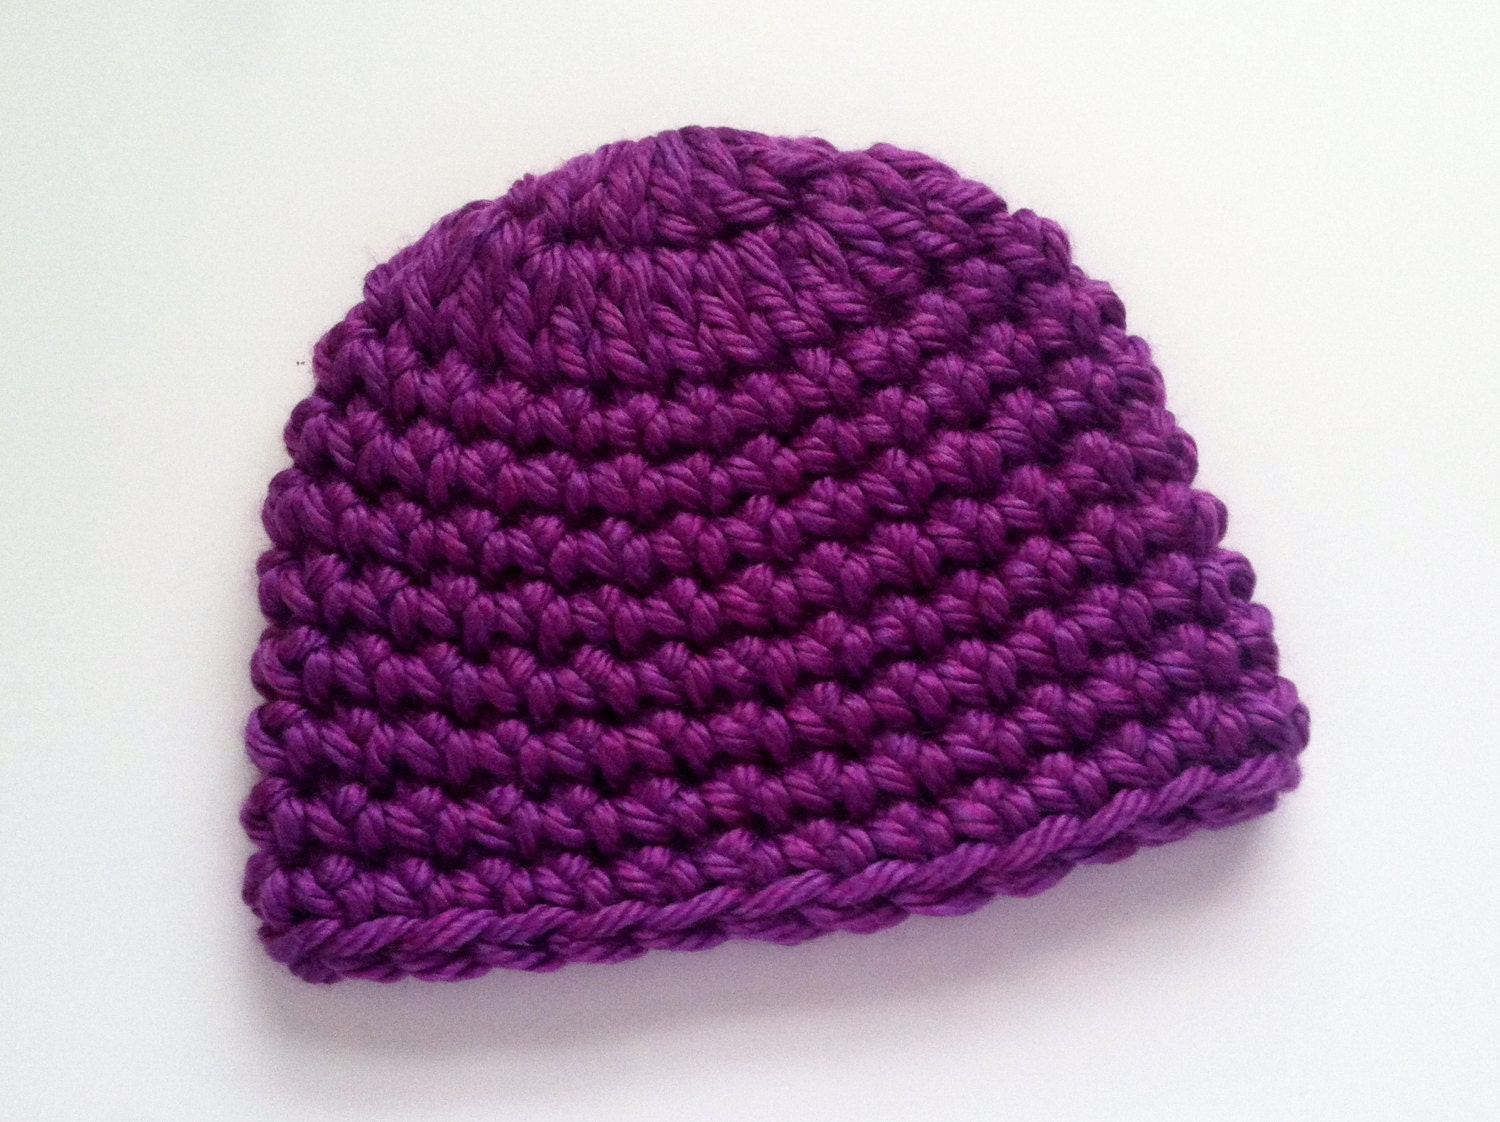 Purple Super Bulky Crocheted Hat Handmade Skull Caps Chunky